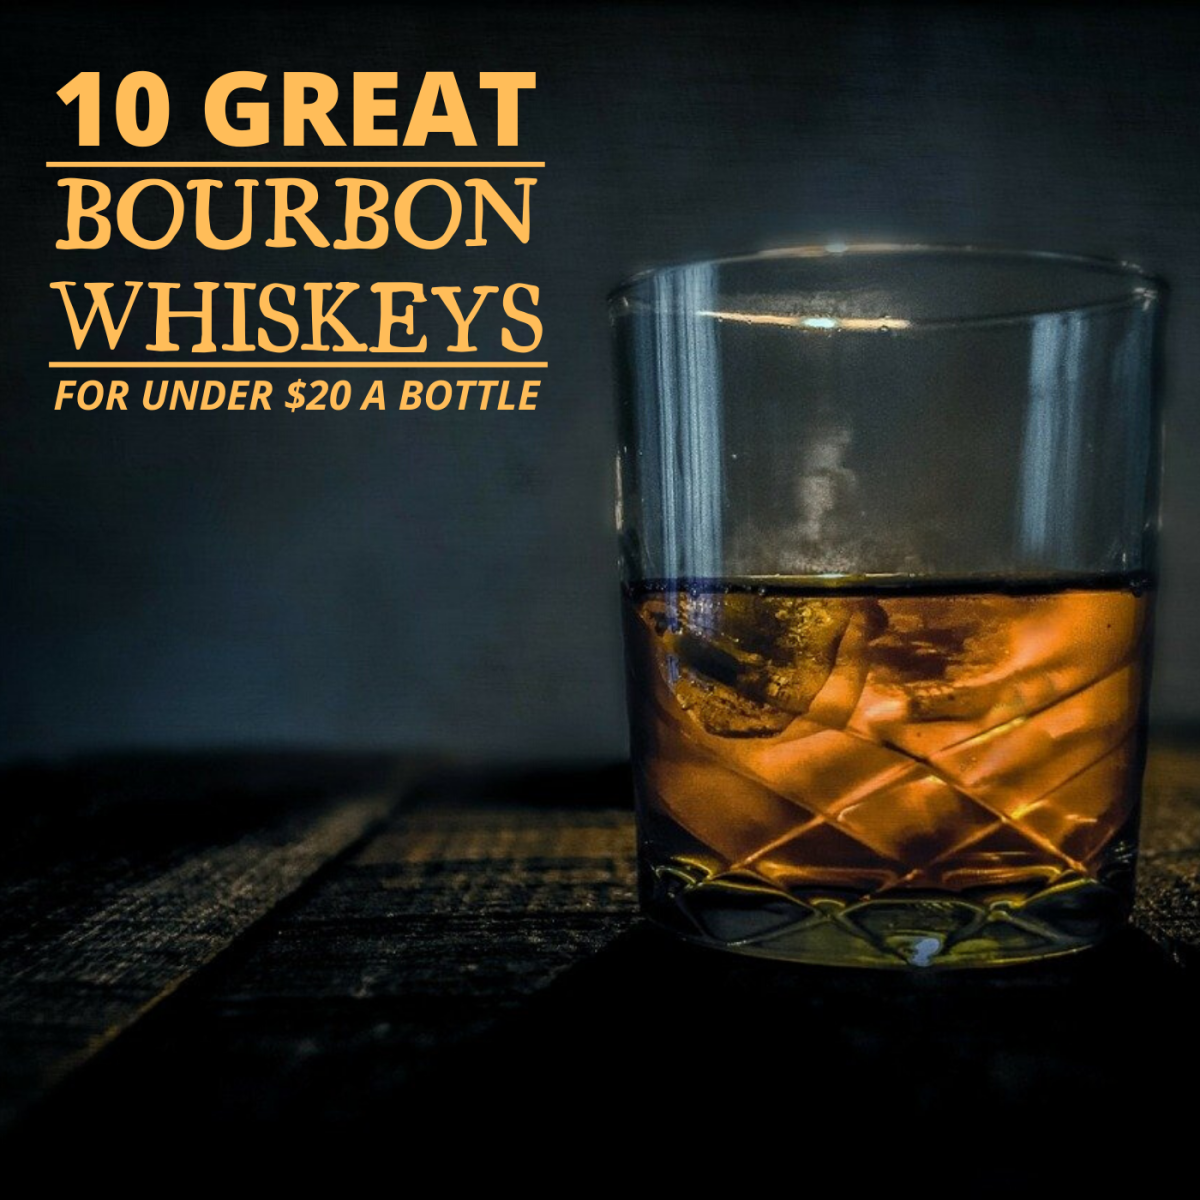 The 10 Best Bourbon Whiskeys for Under $20